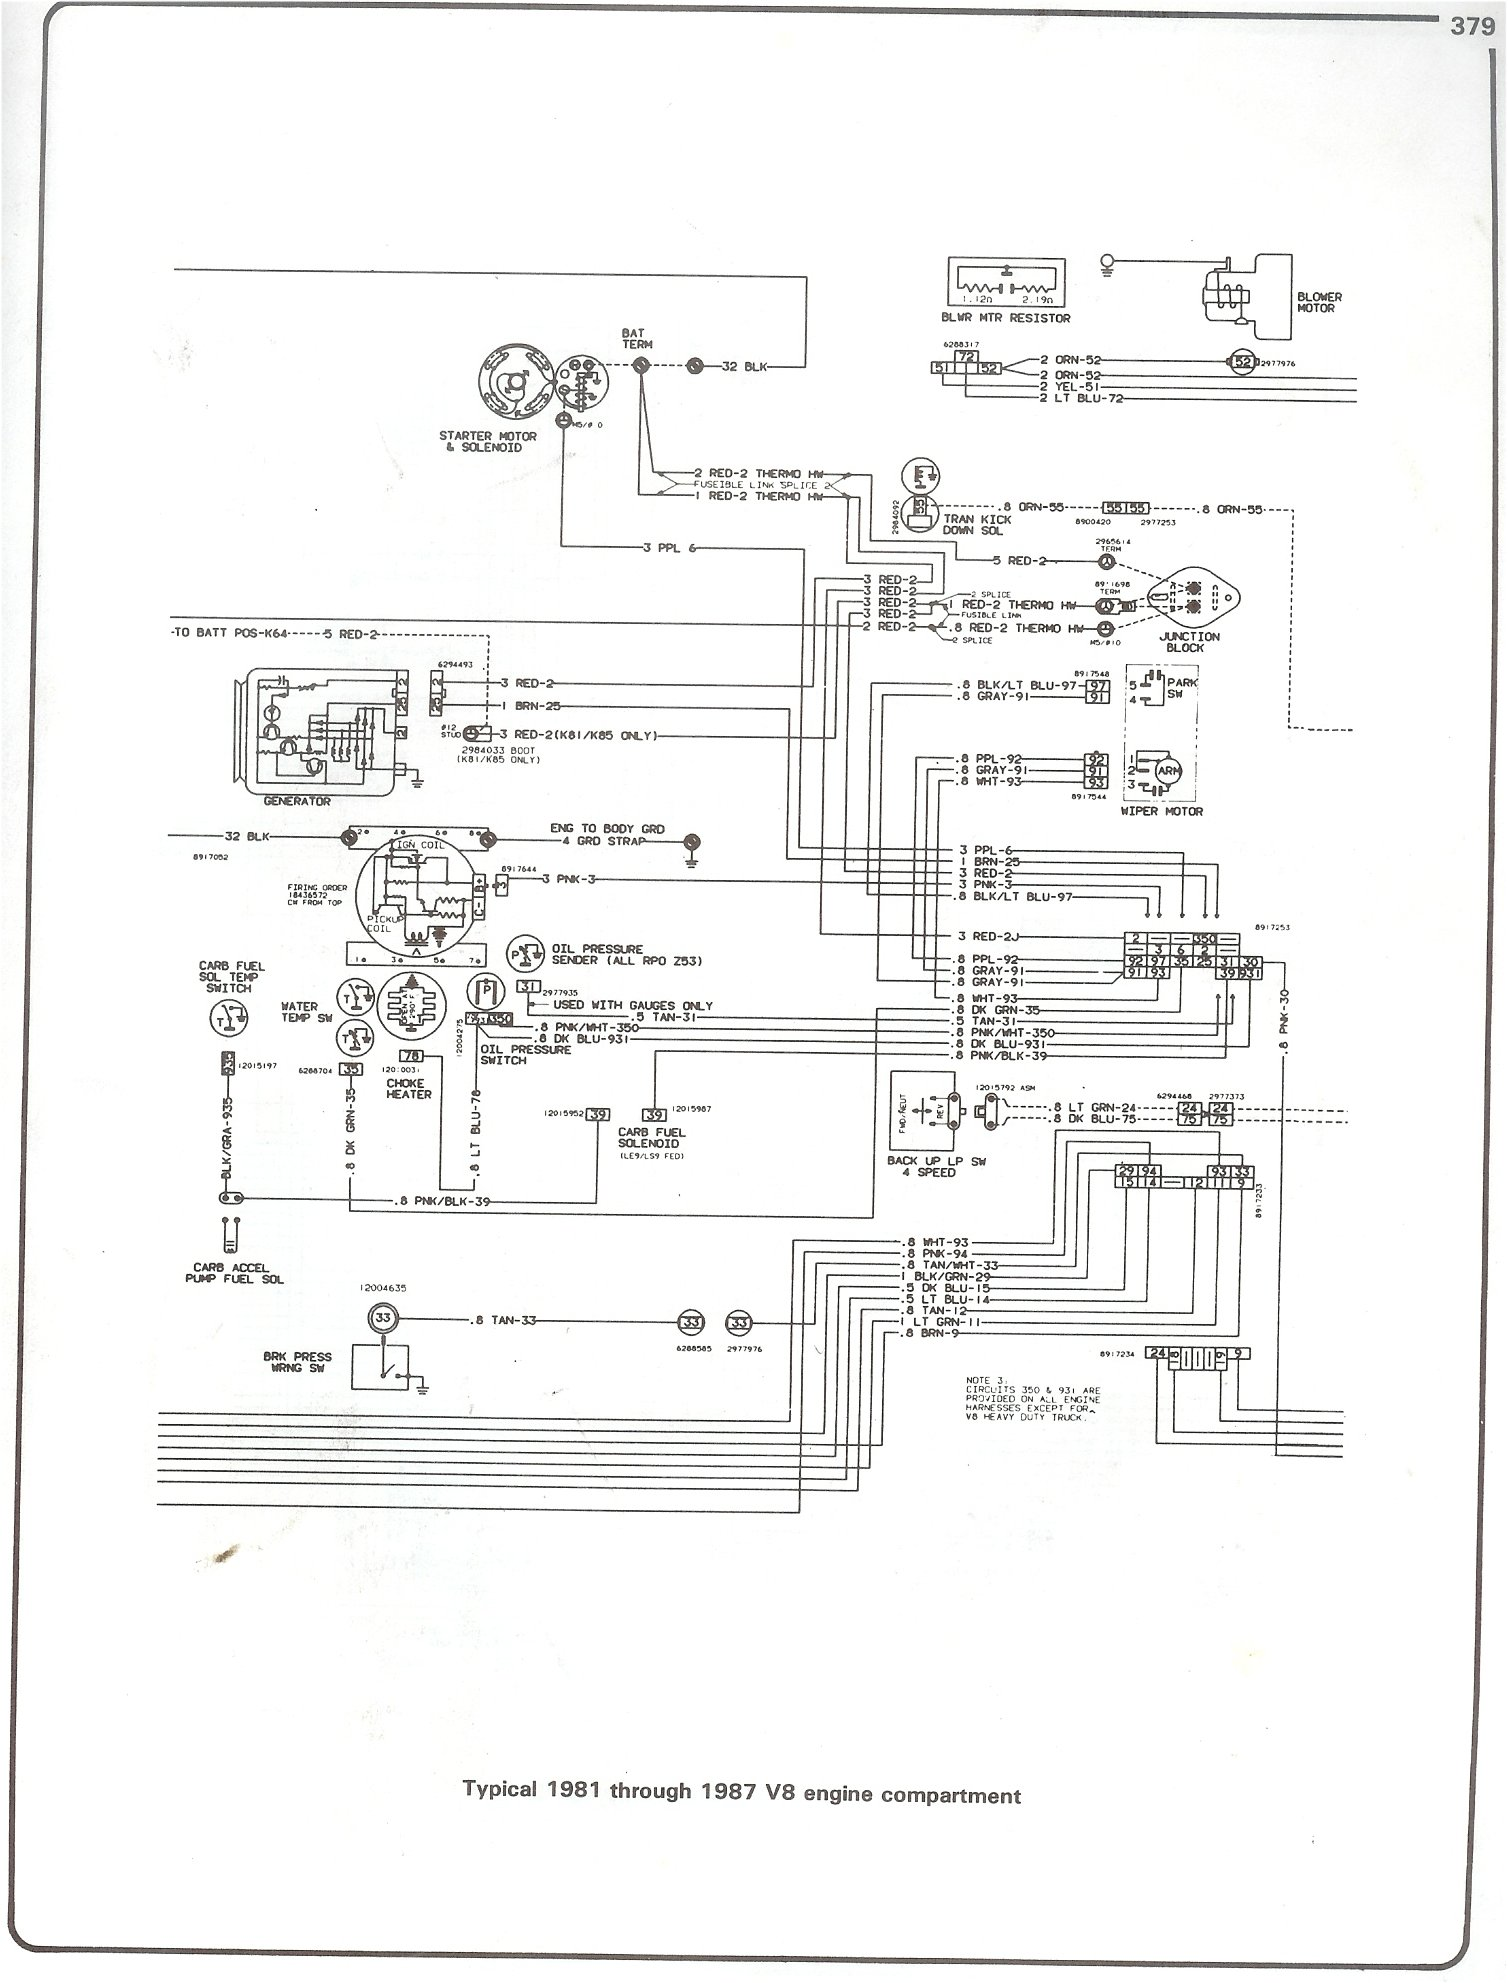 81 87_V8_engine complete 73 87 wiring diagrams chevy truck diagrams free at edmiracle.co